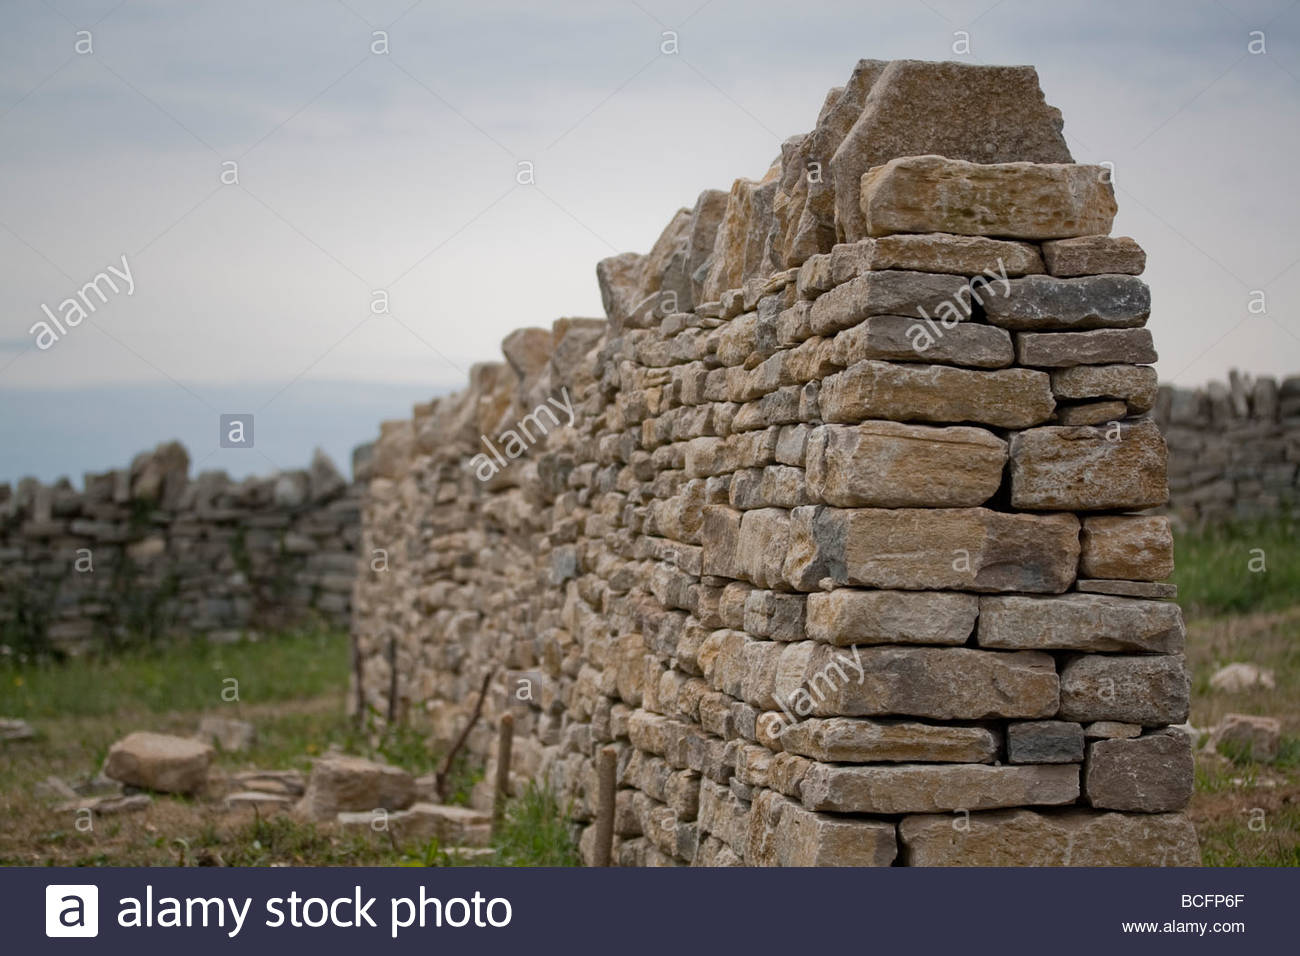 Cross section through the end of a dry stone wall, Isle of Purbeck, Dorset, UK - Stock Image